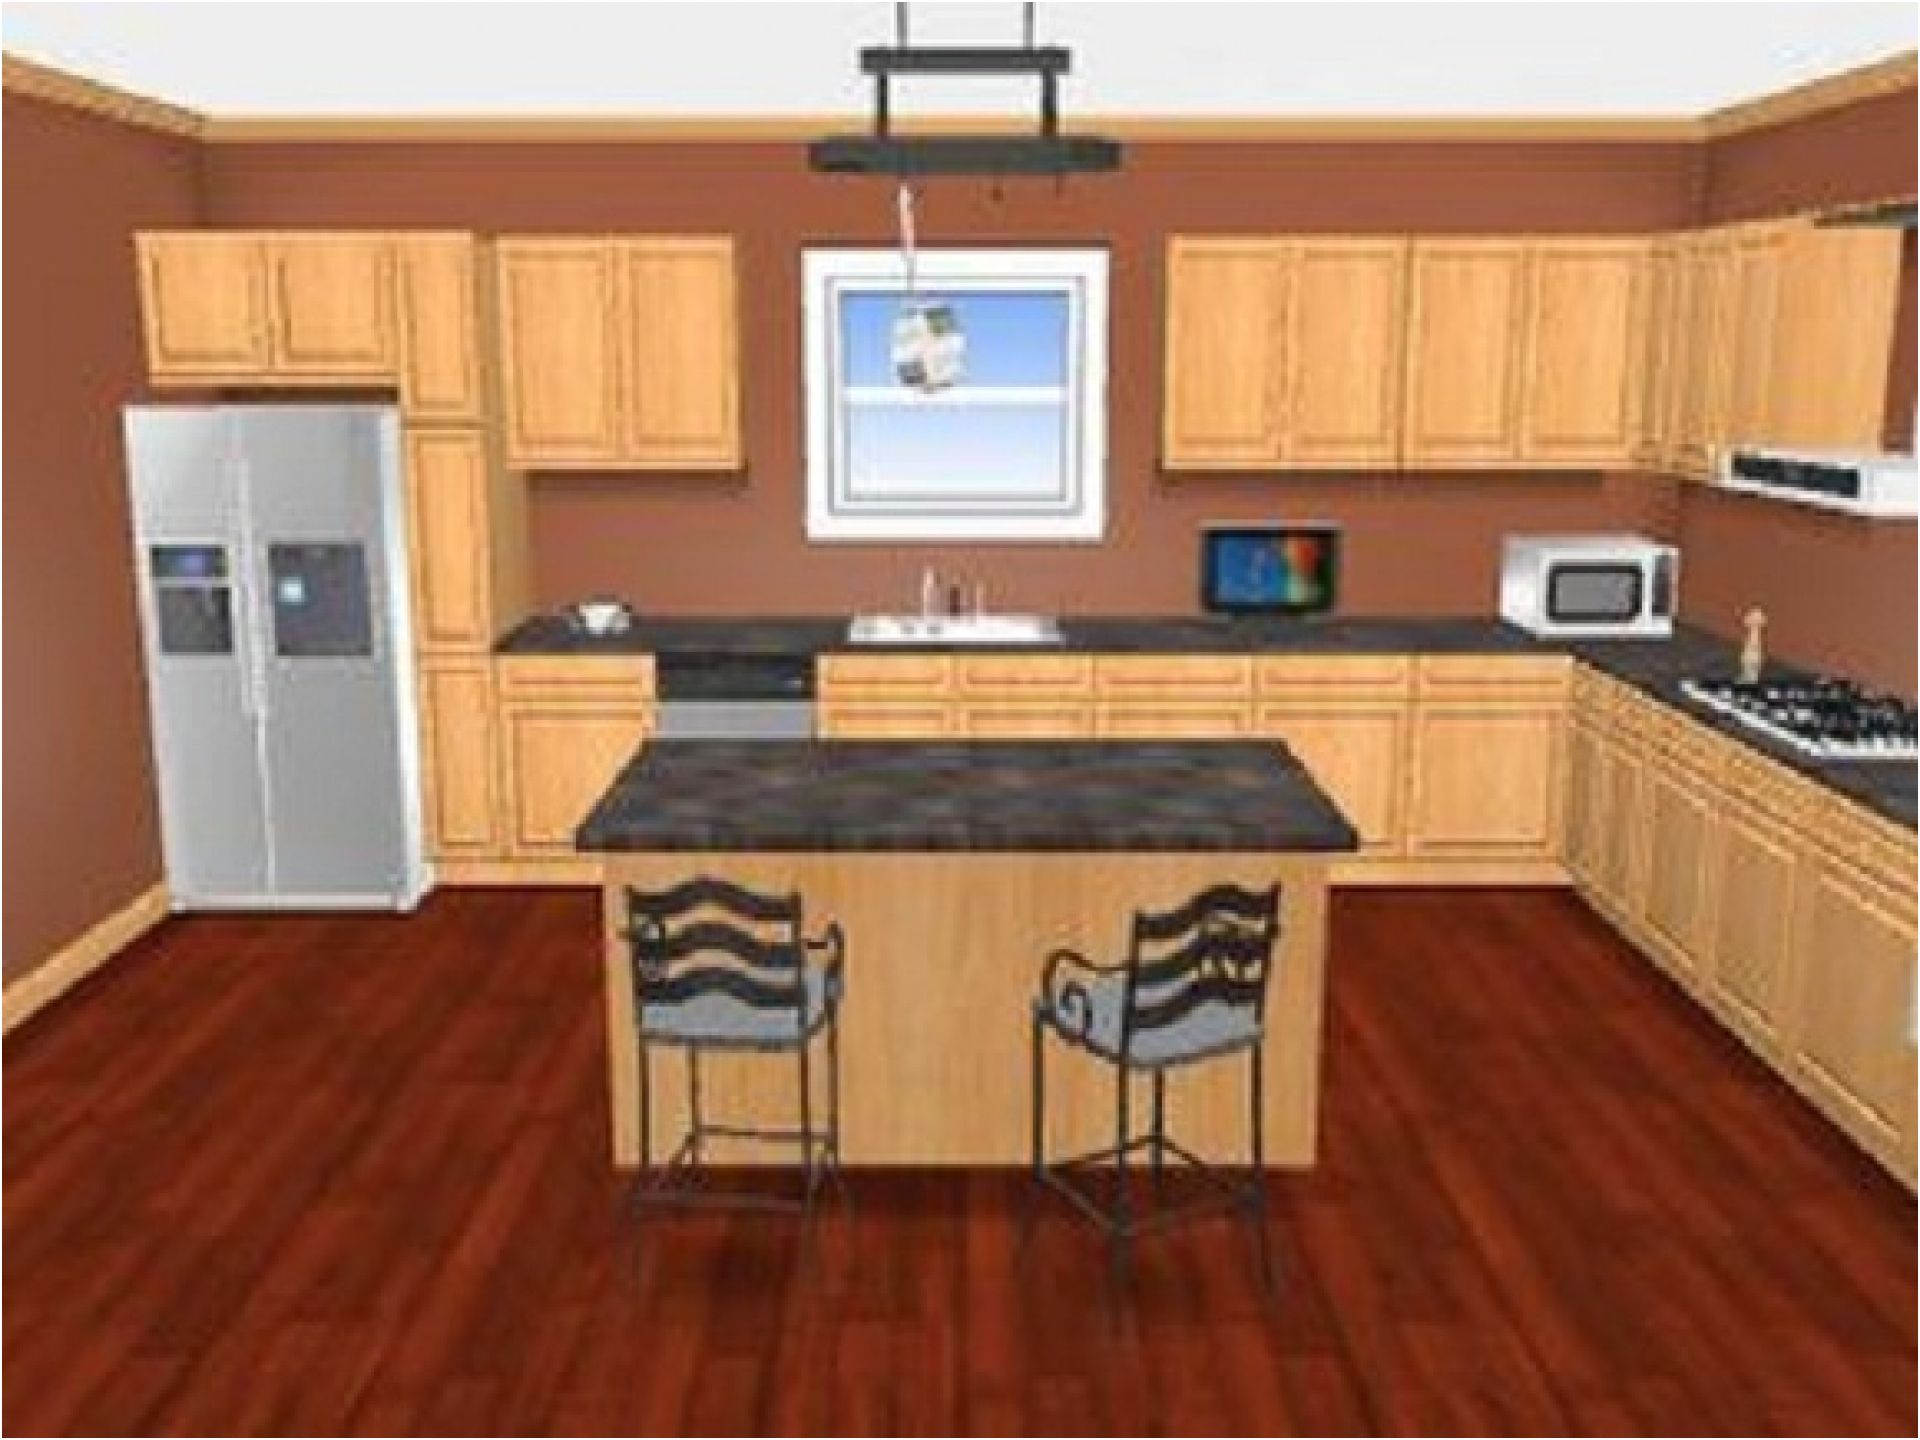 12 classic design your kitchen online pictures | modern